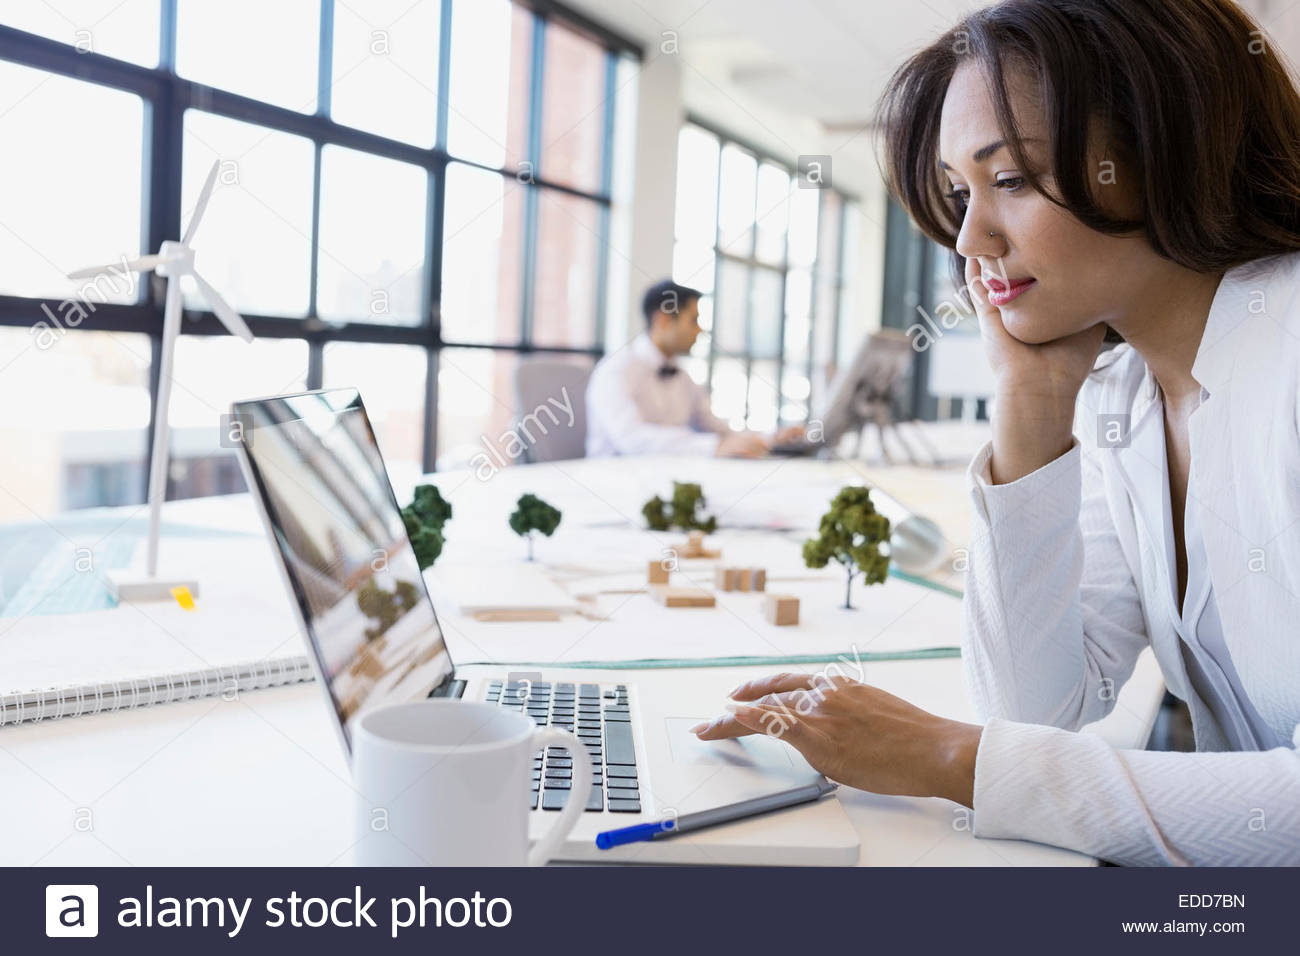 Focused architect working at laptop in office - Stock Image